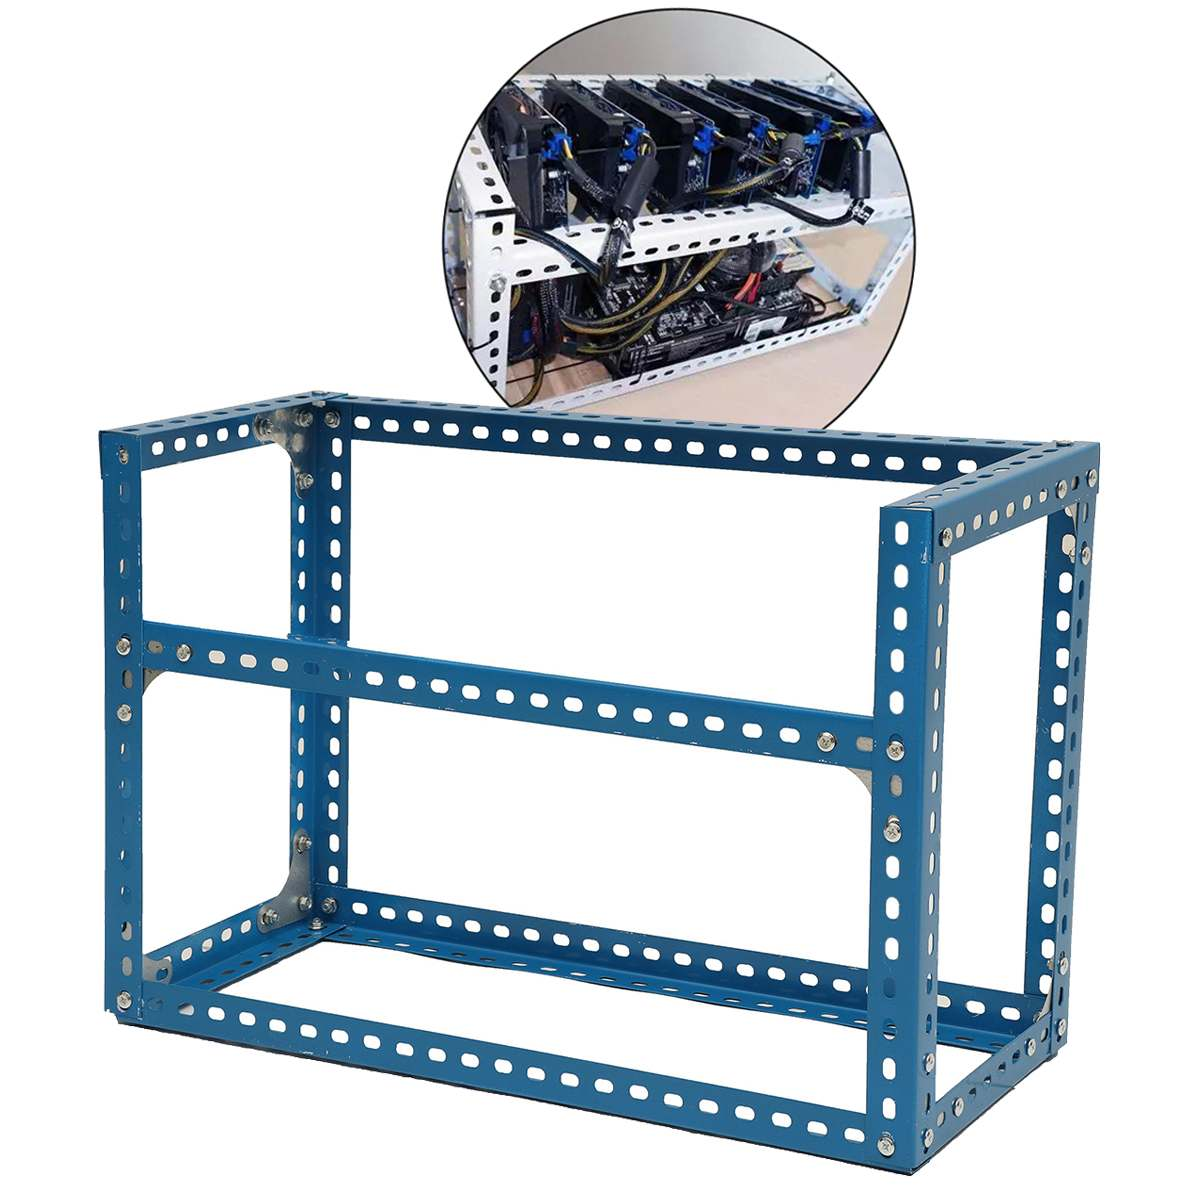 Steel Coin Open Air Miner Mining Frame Rig Case Up To 6 GPU BTC LTC ETH Ethereum Blue